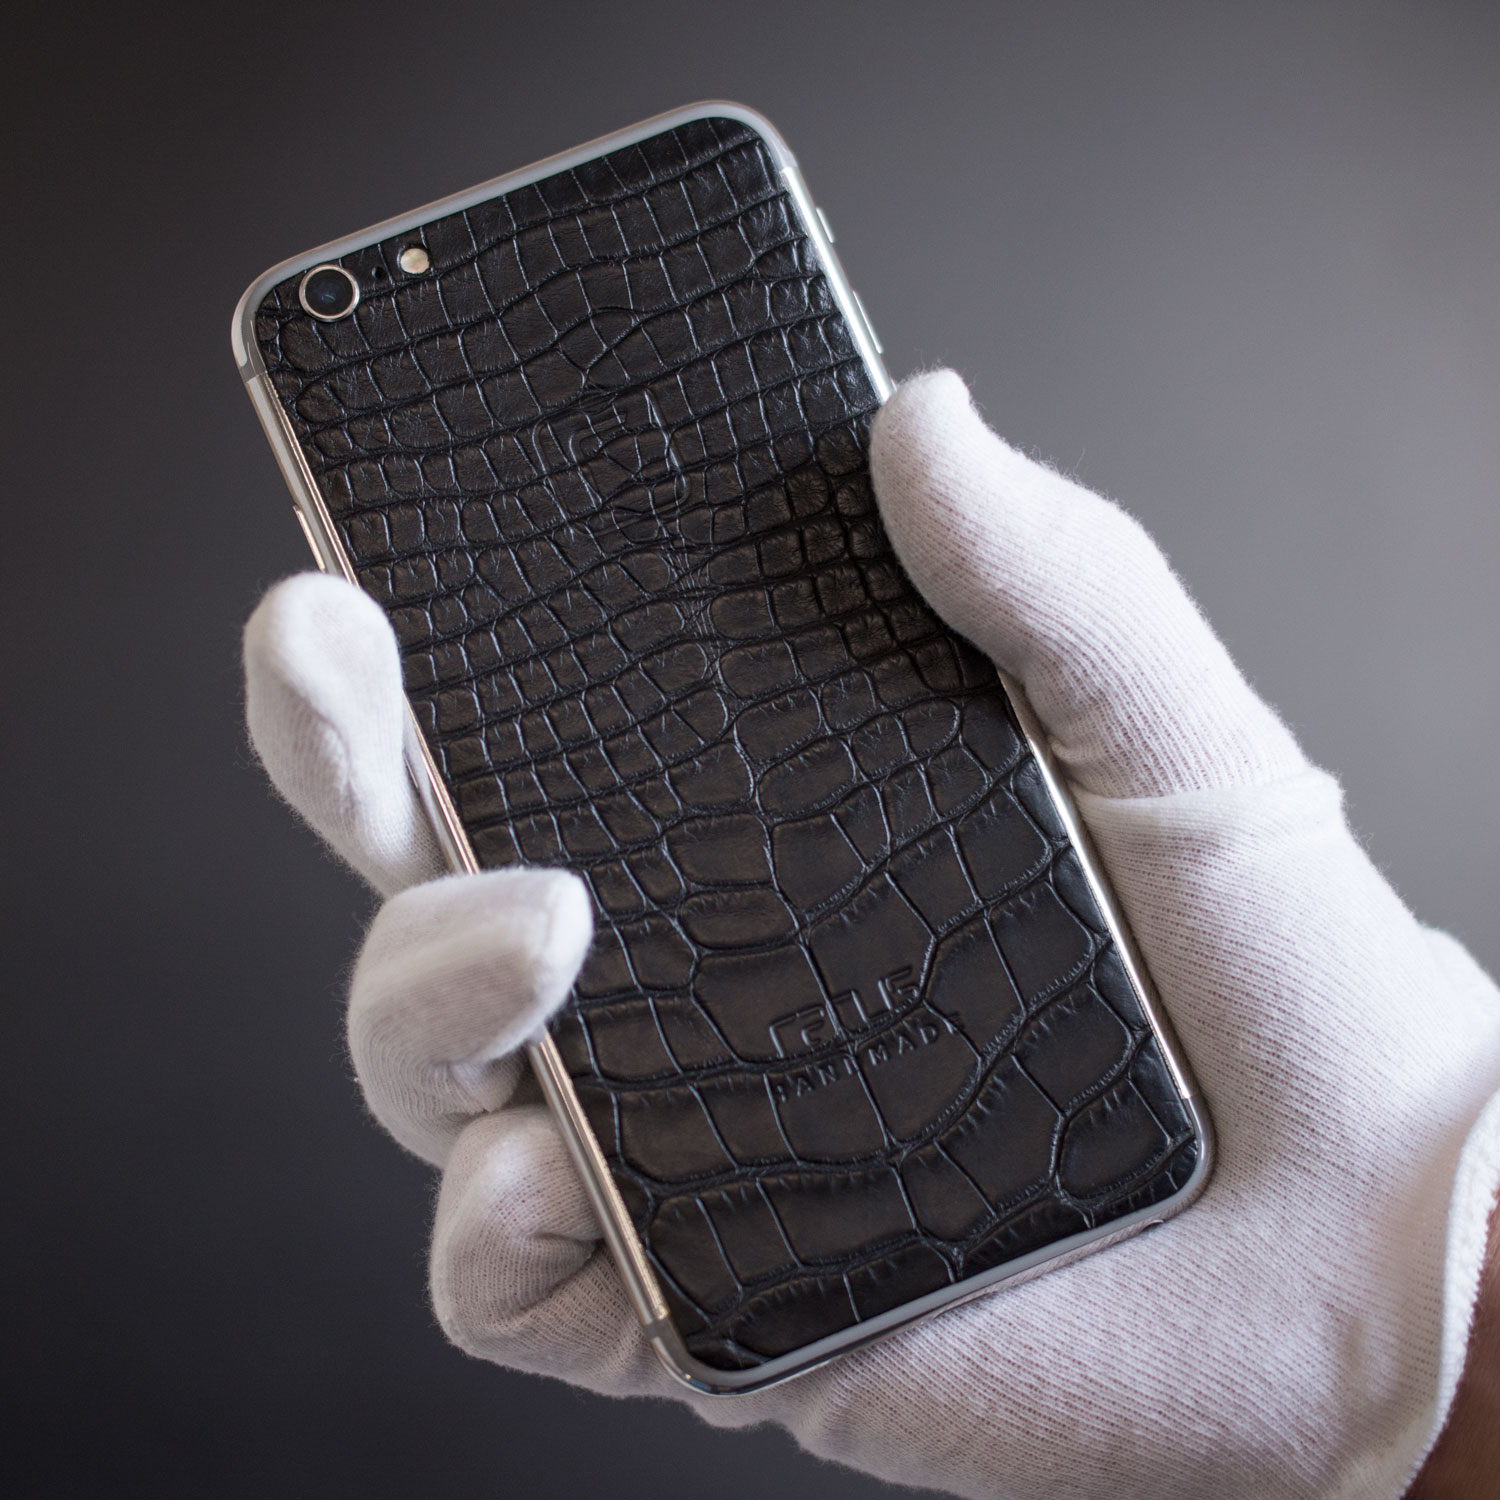 silver rhodium iPhone 6s withblack aligator leather